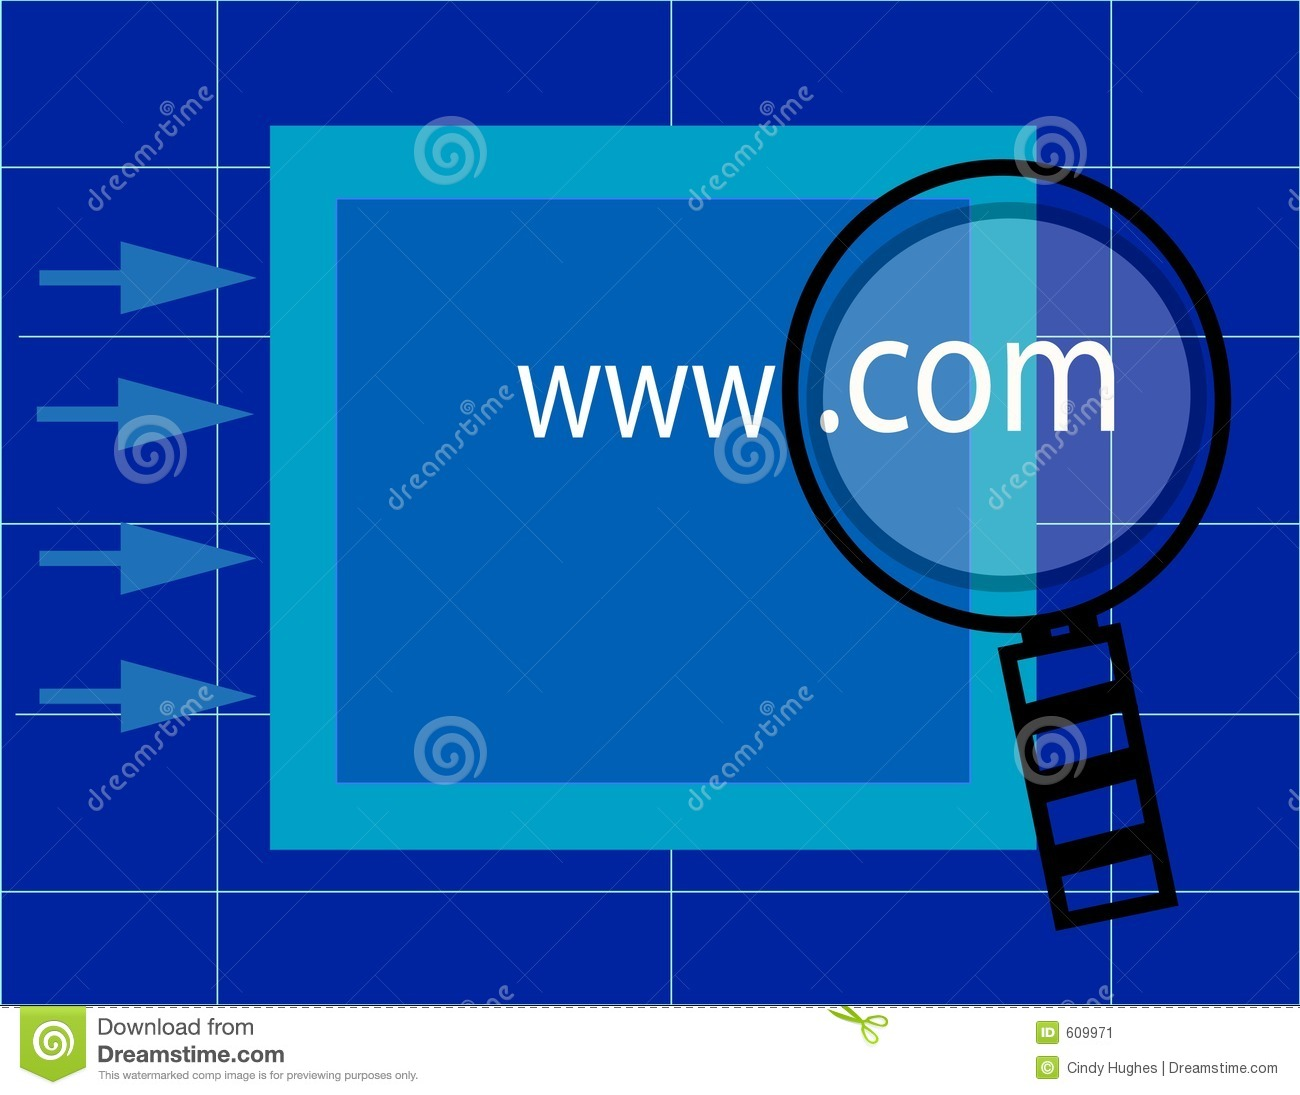 Stock Image Www Com Search Image609971